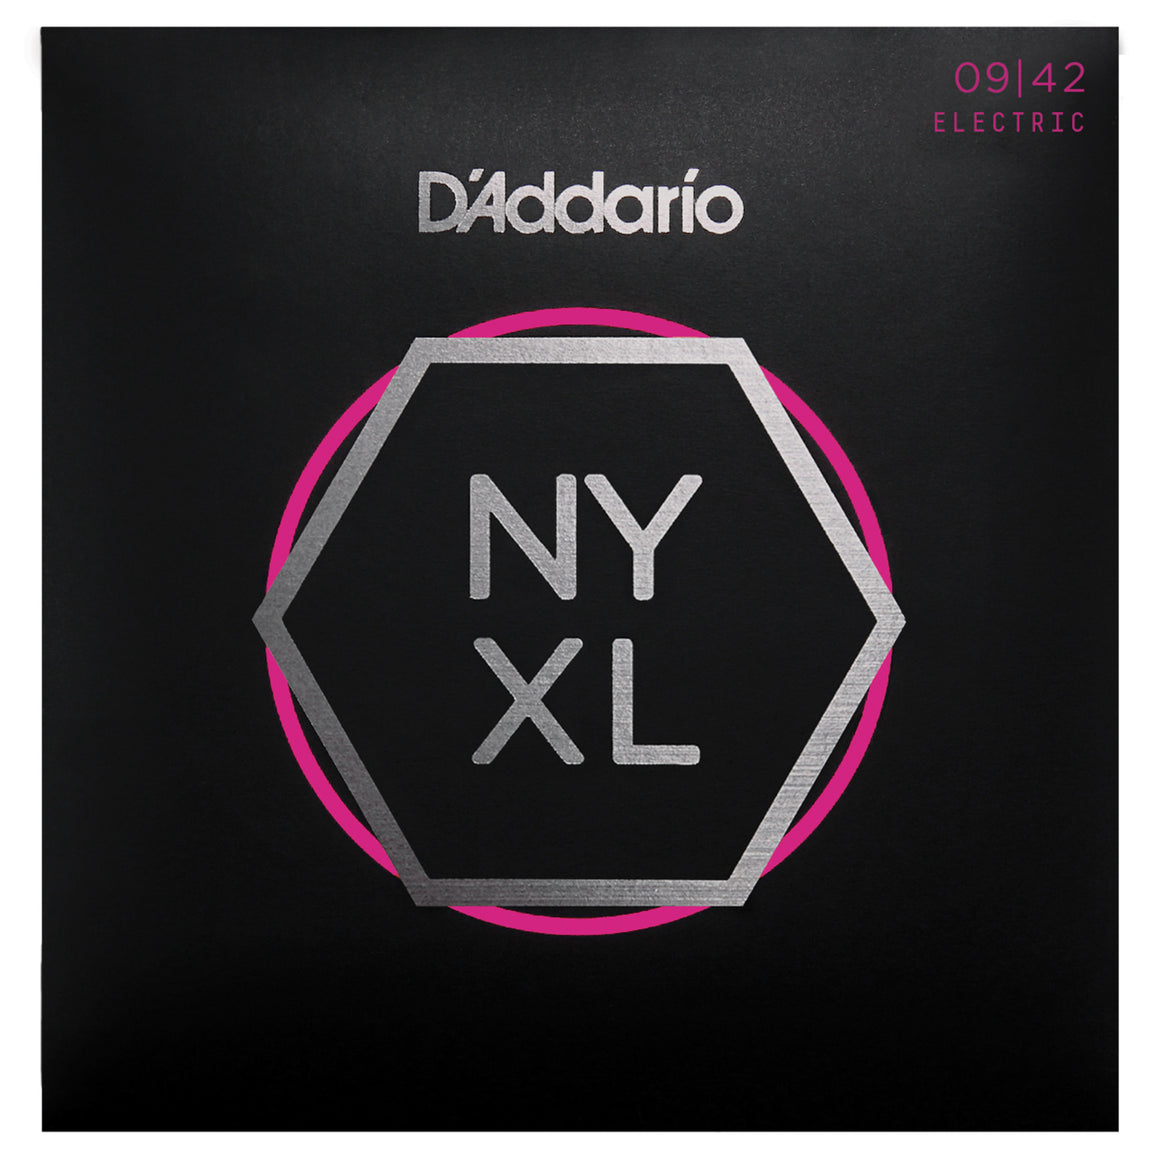 D'Addario NYXL0942 9-42 Nickel Super Light Electric Guitar Strings